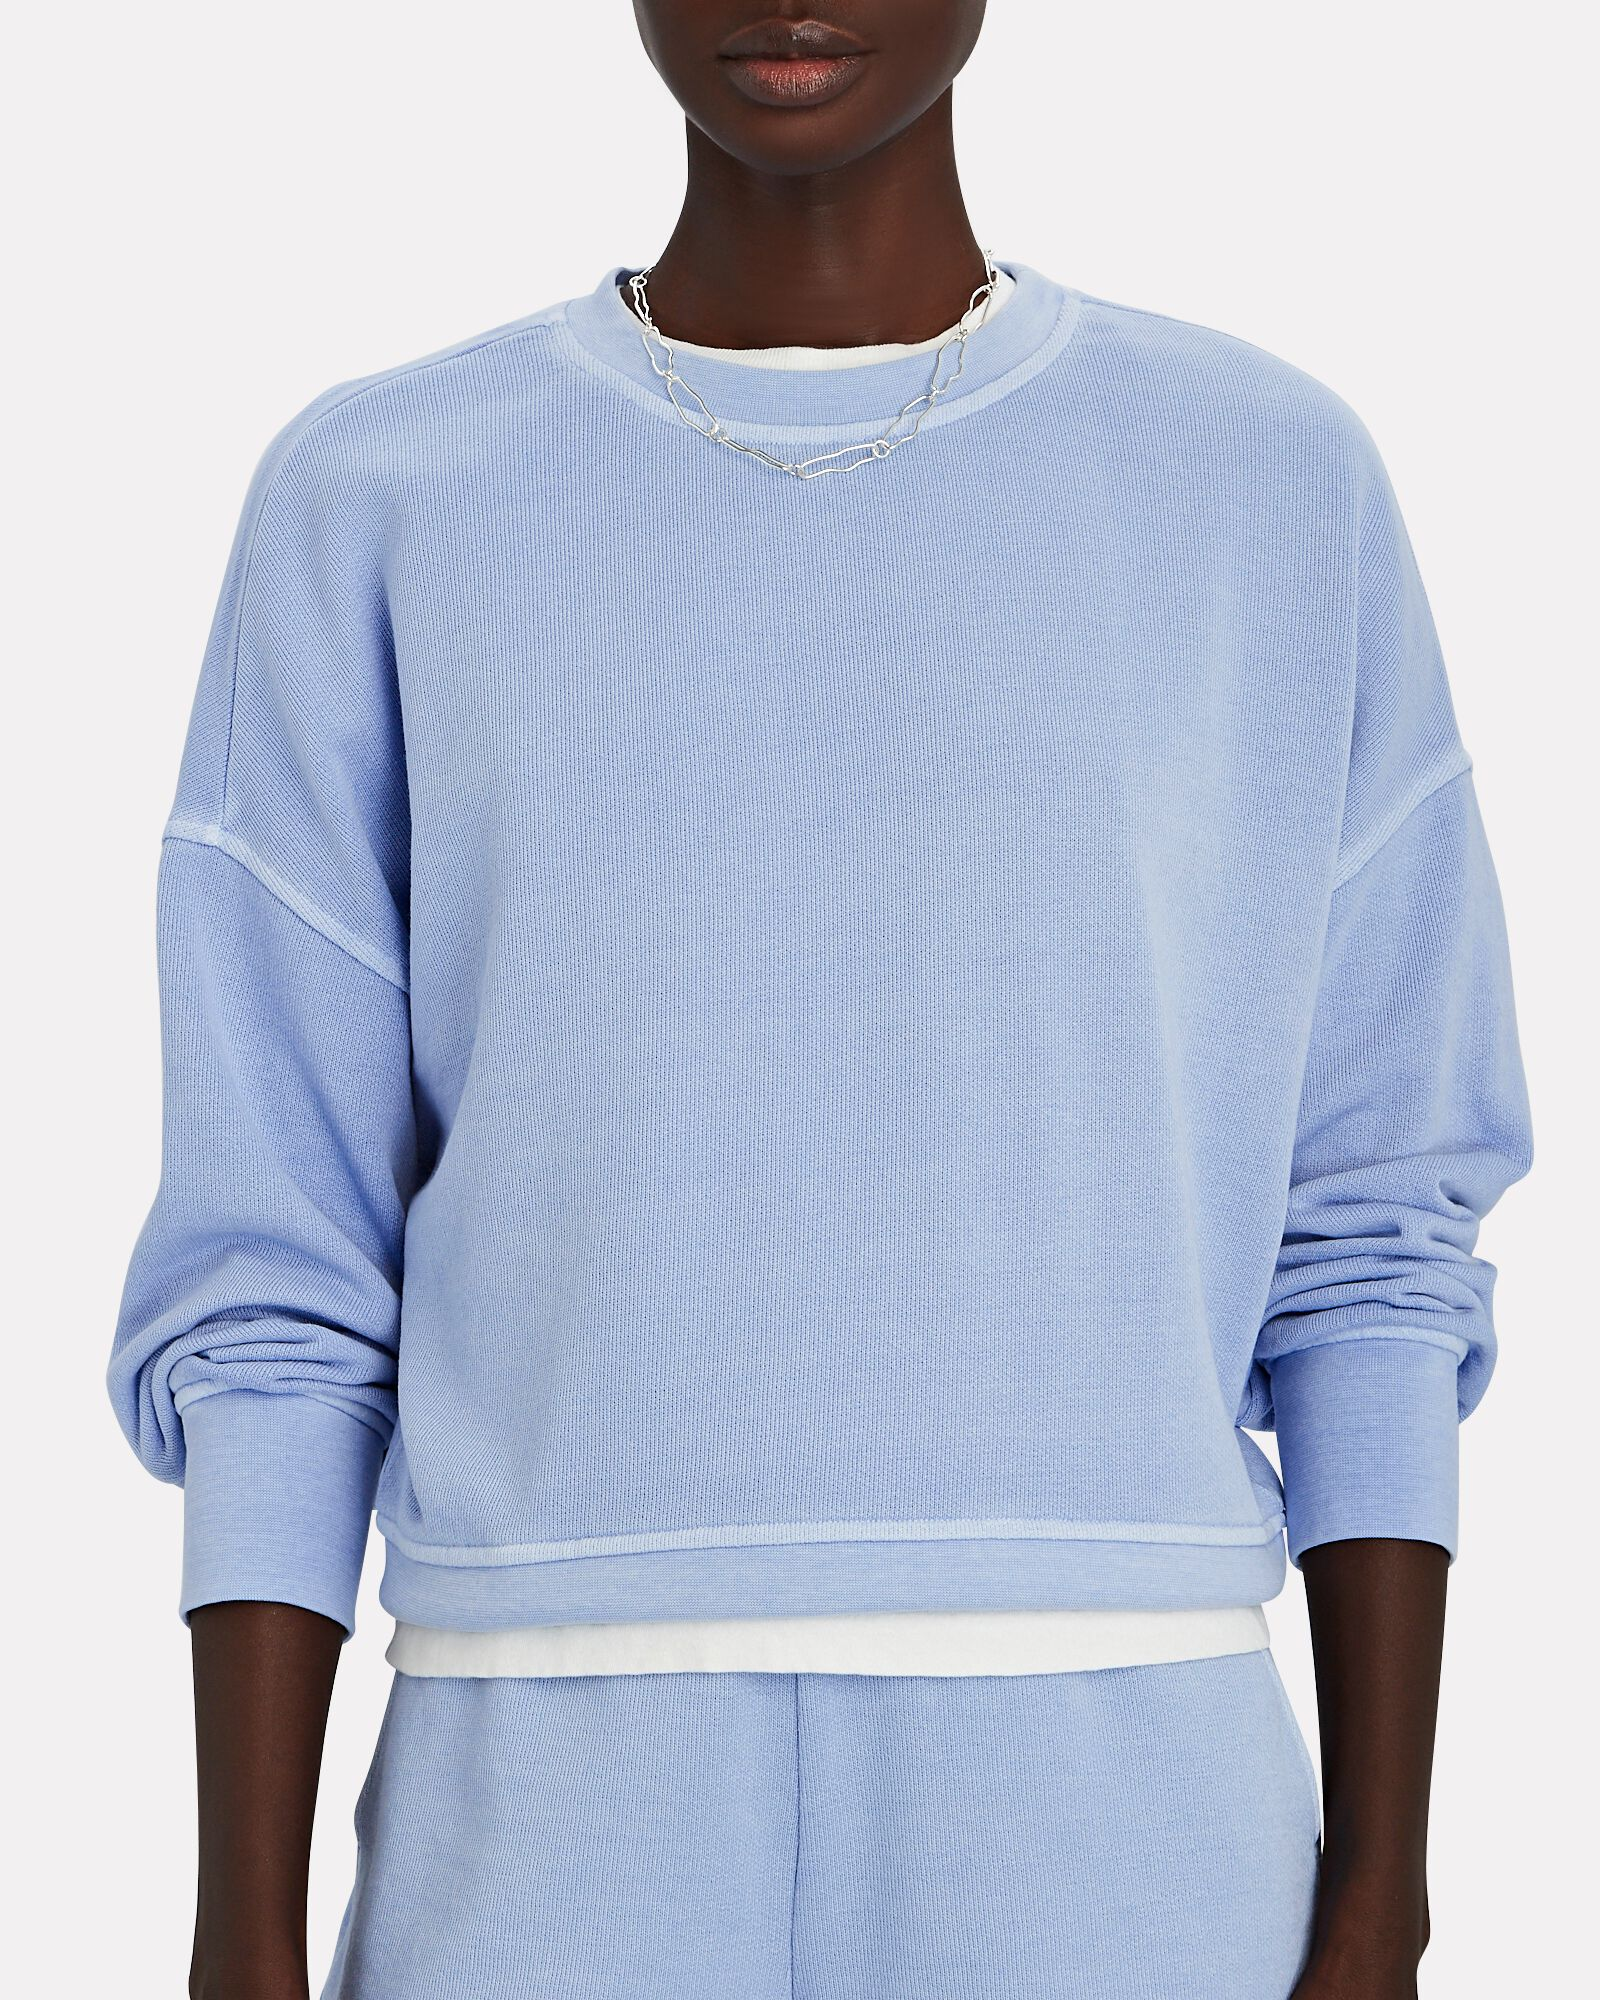 Alice Crewneck Sweatshirt, BLUE, hi-res